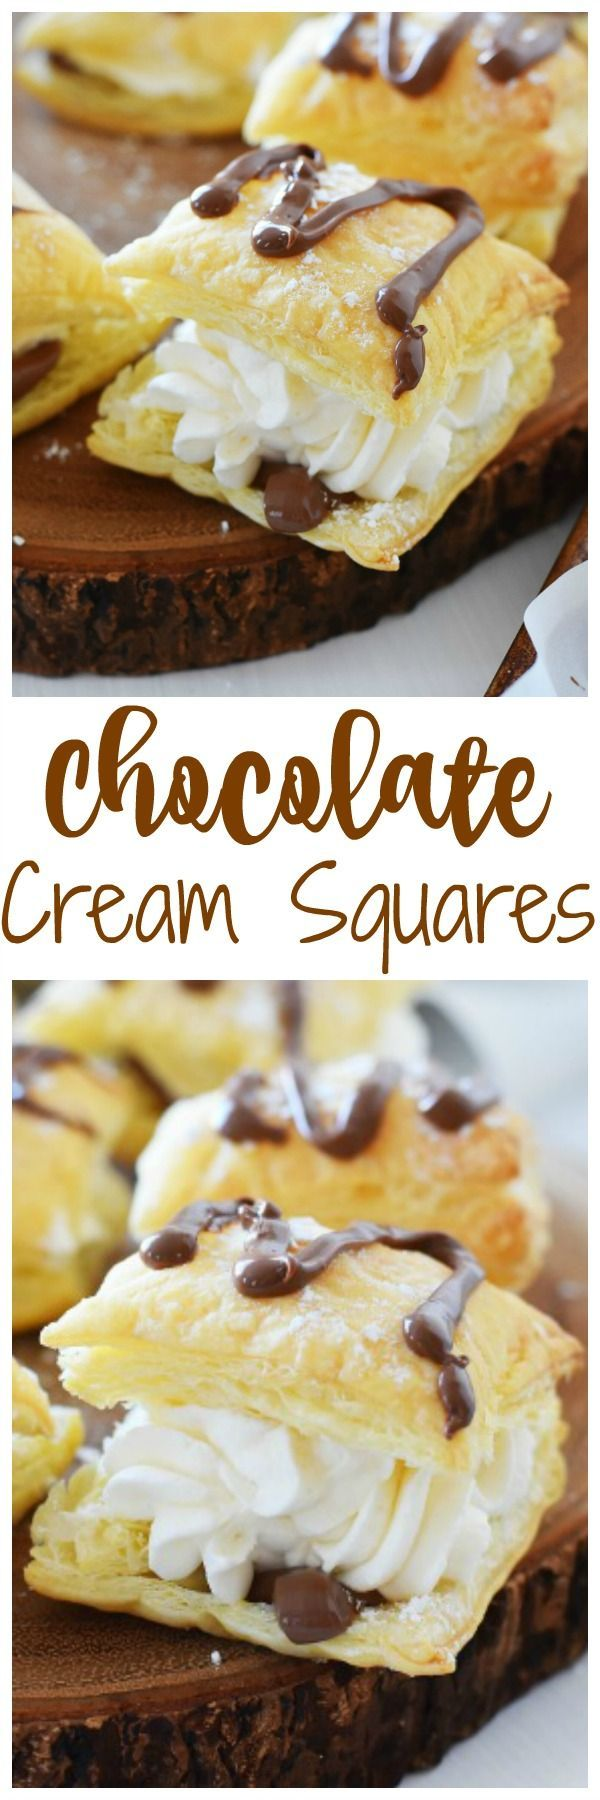 Real Whipped Cream & Chocolate dessert squares are the perfectly elegant dessert idea. Ideal for a Valentine's Date night, these are super delicious and feature delicate puff pastry.